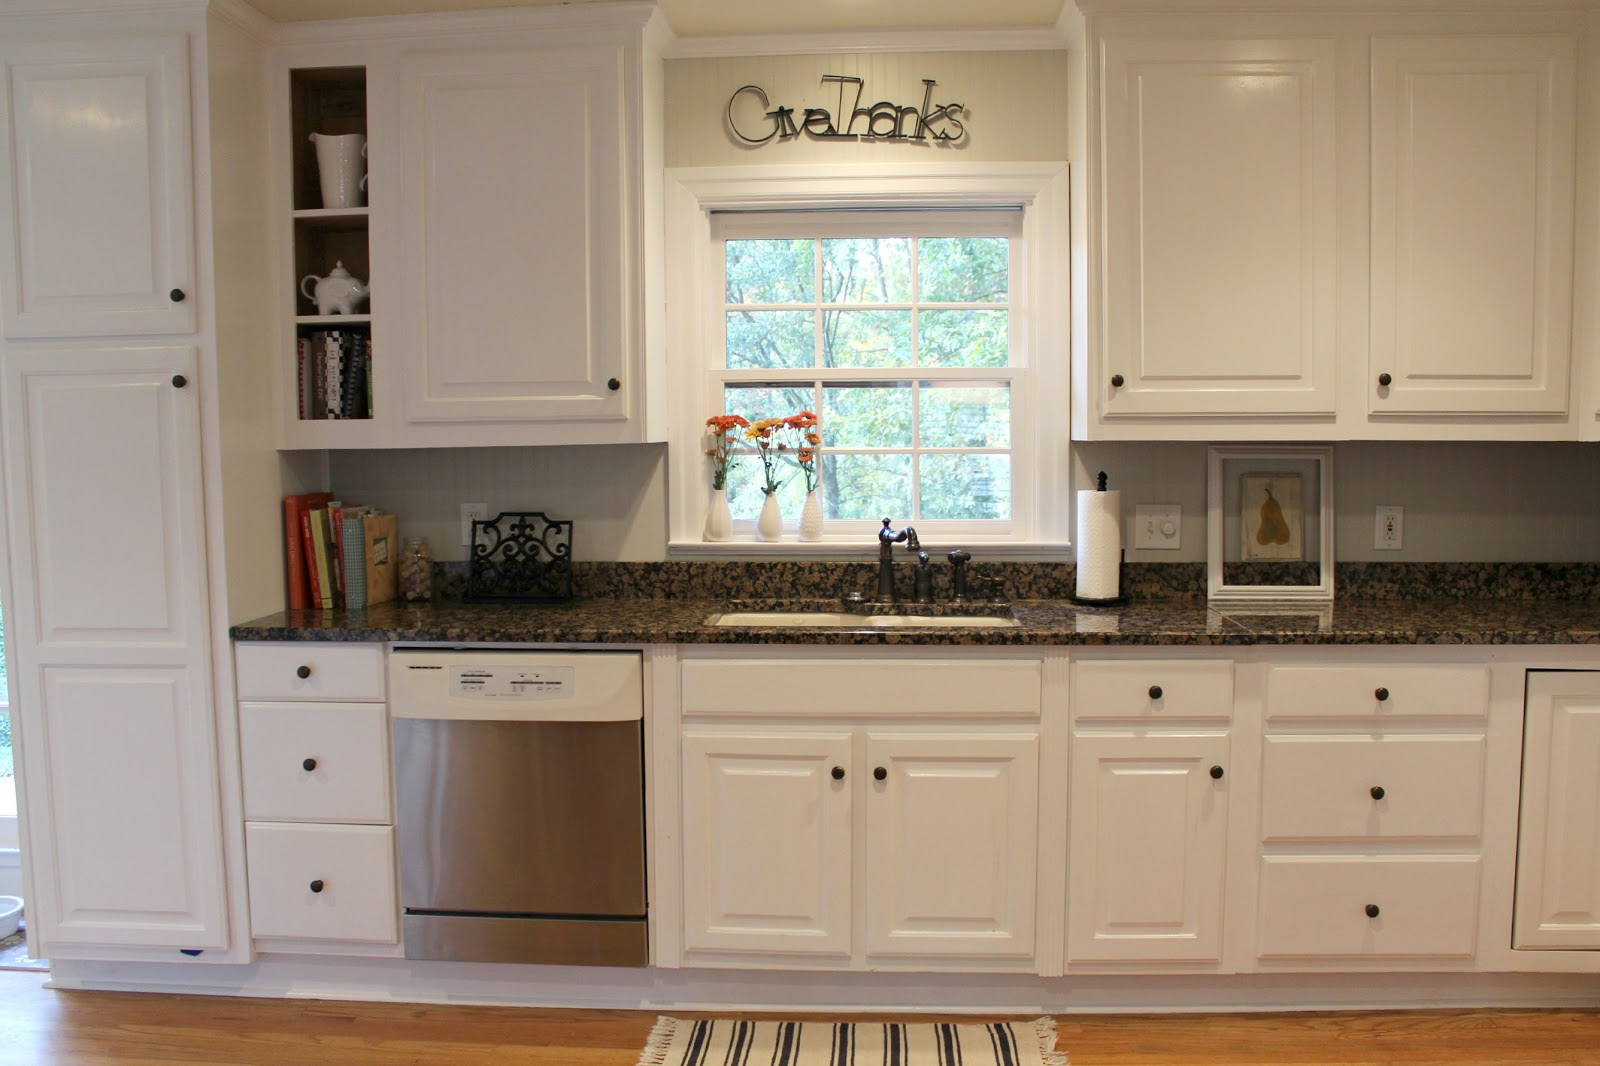 Week I Shared The Big Reveal Of Our Freshly Painted Kitchen Cabinets